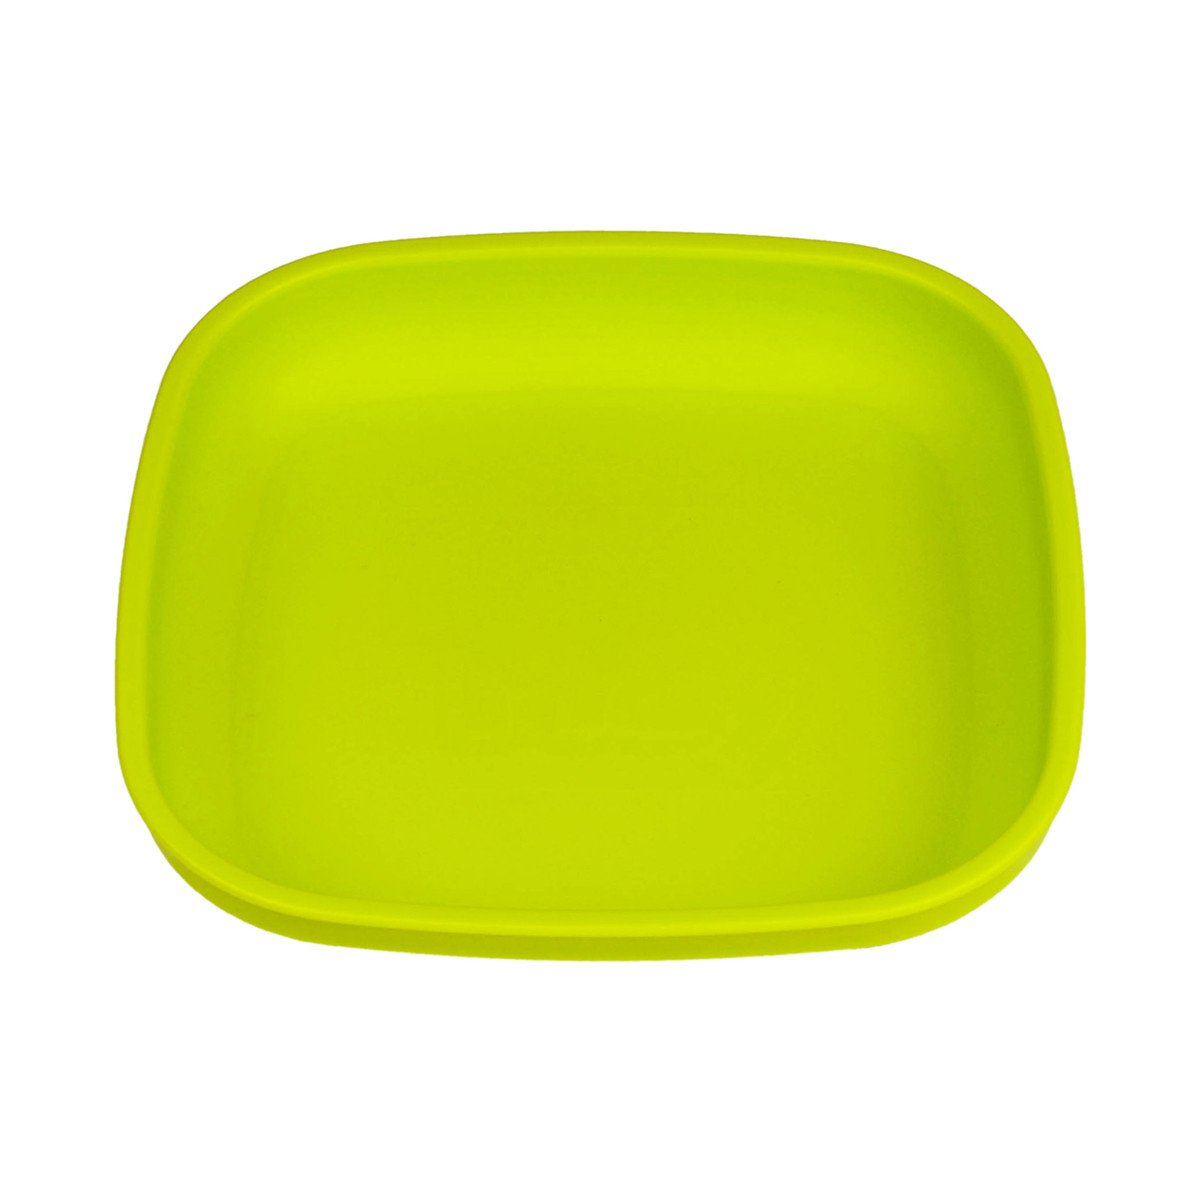 Replay Plate Replay Dinnerware Light Green at Little Earth Nest Eco Shop